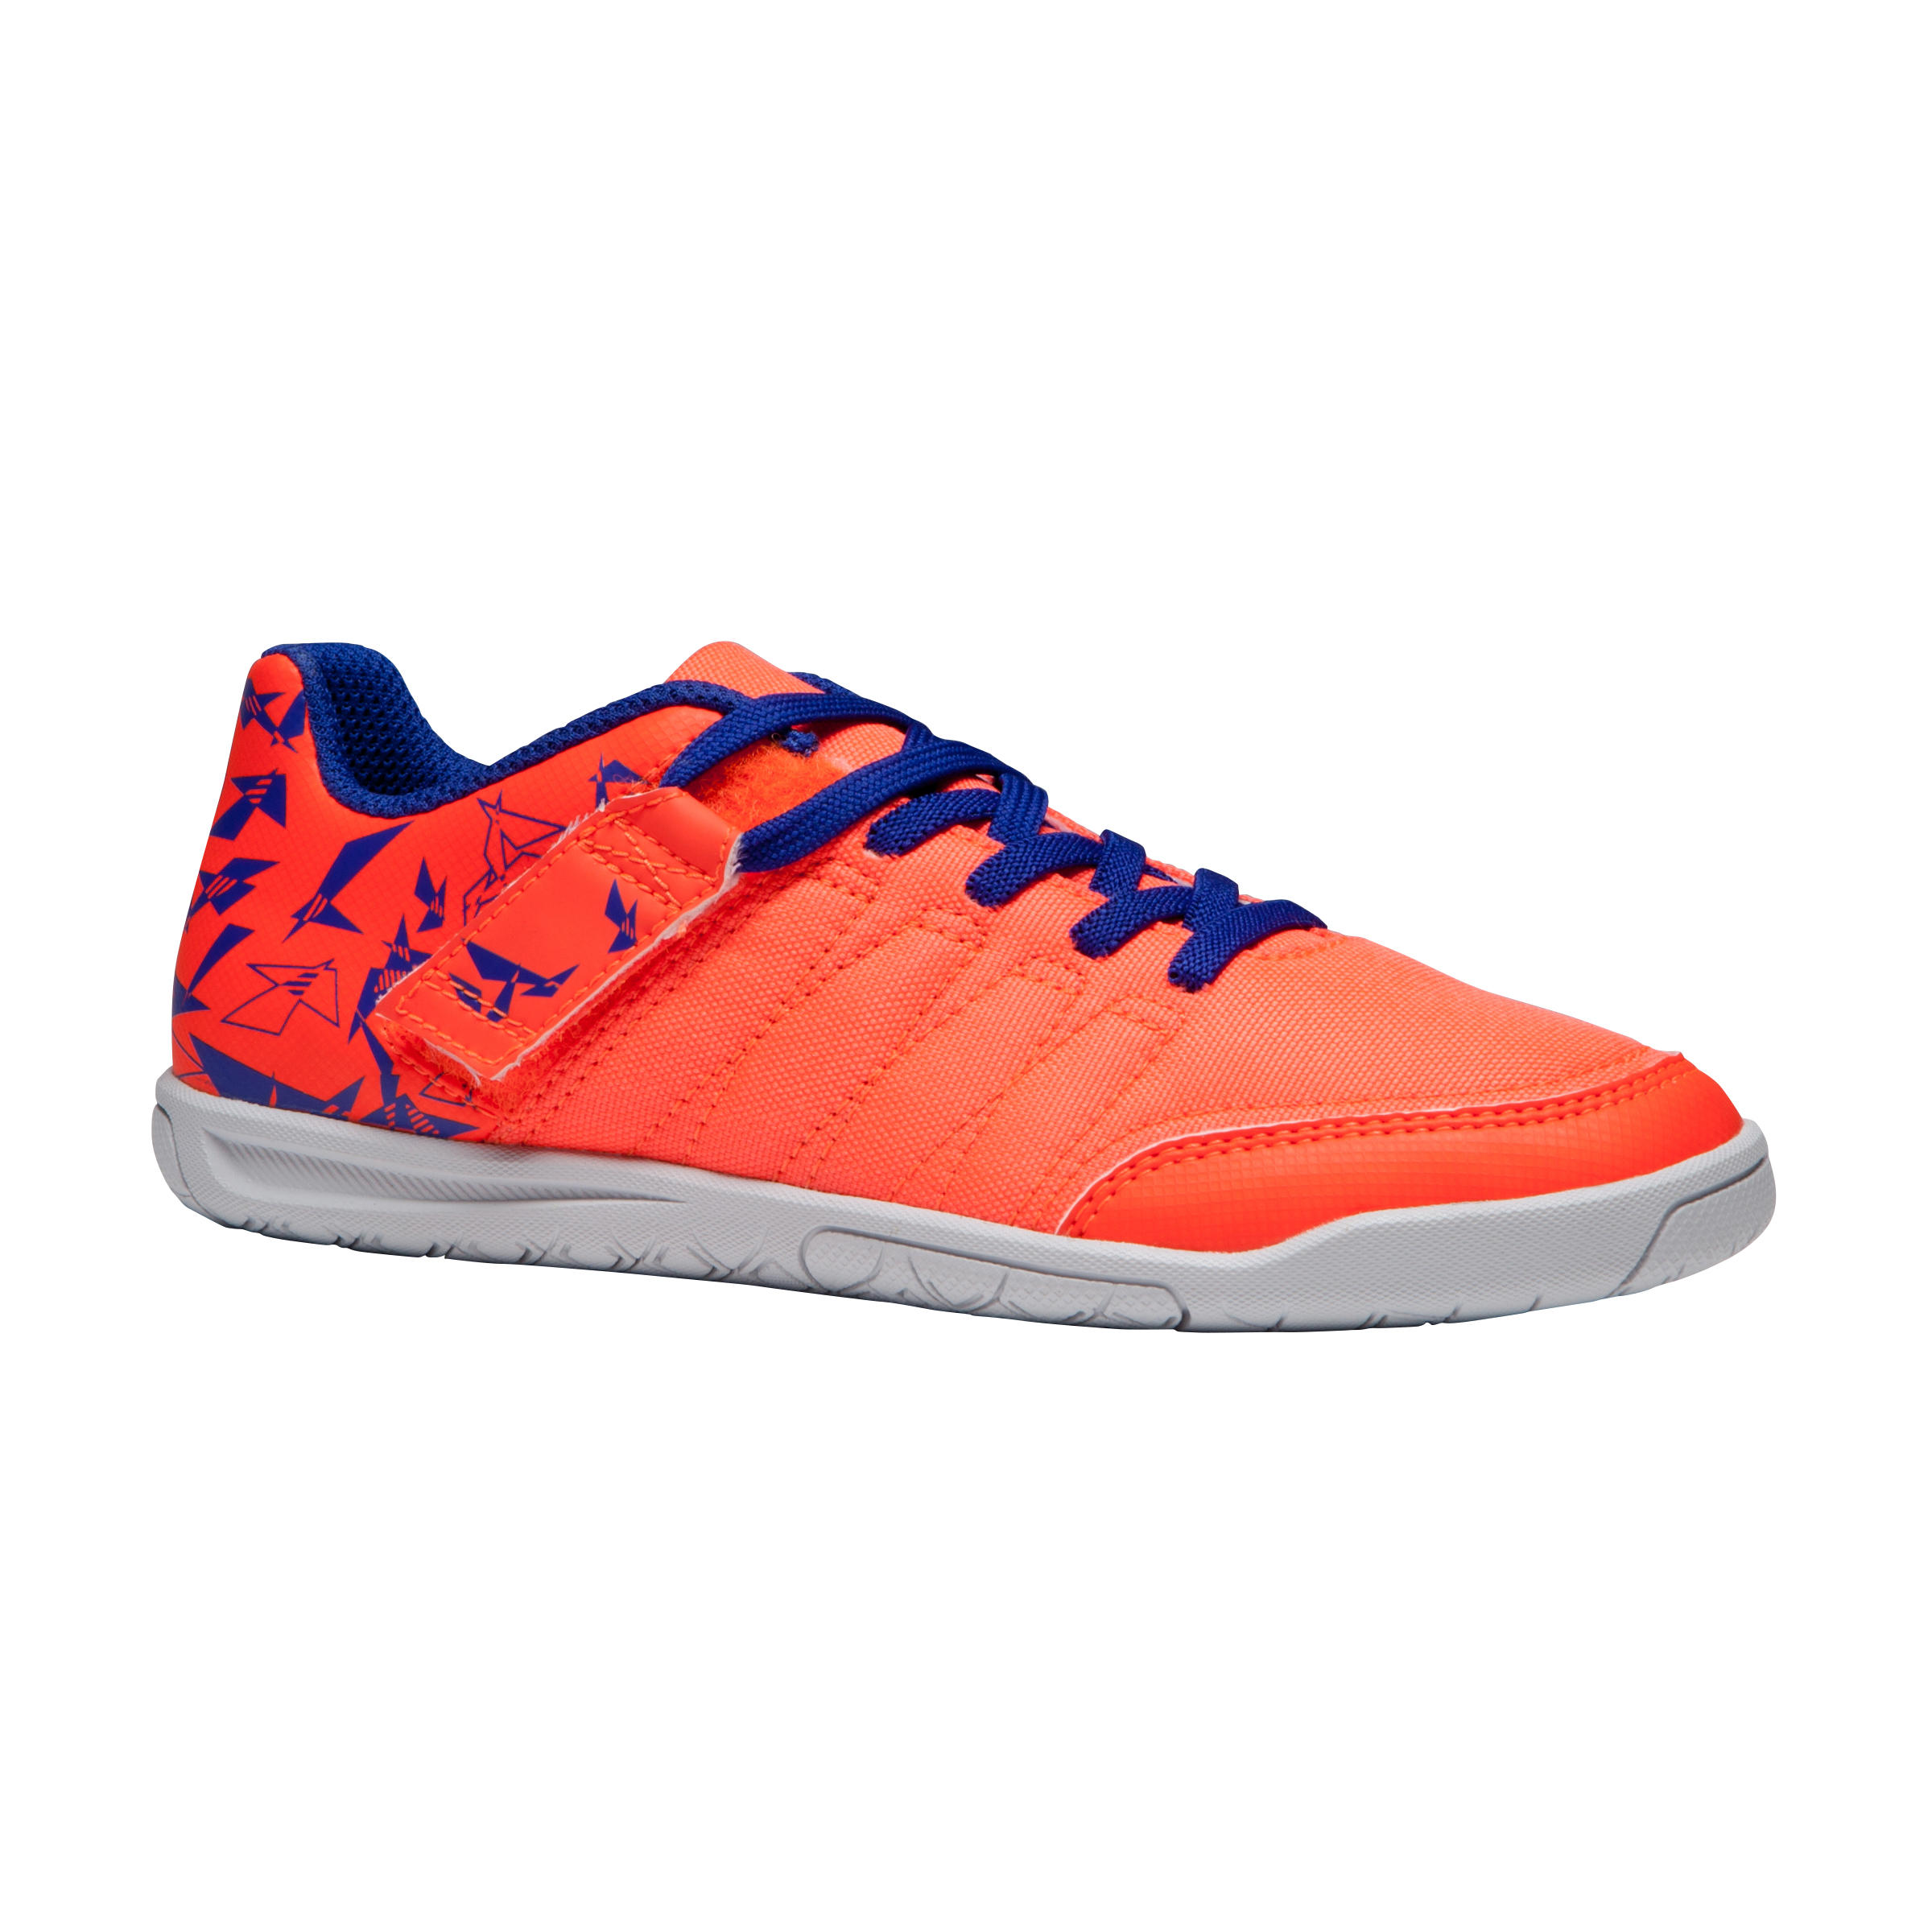 CLR 500 Sala Kids Soccer Trainers - Orange/Blue